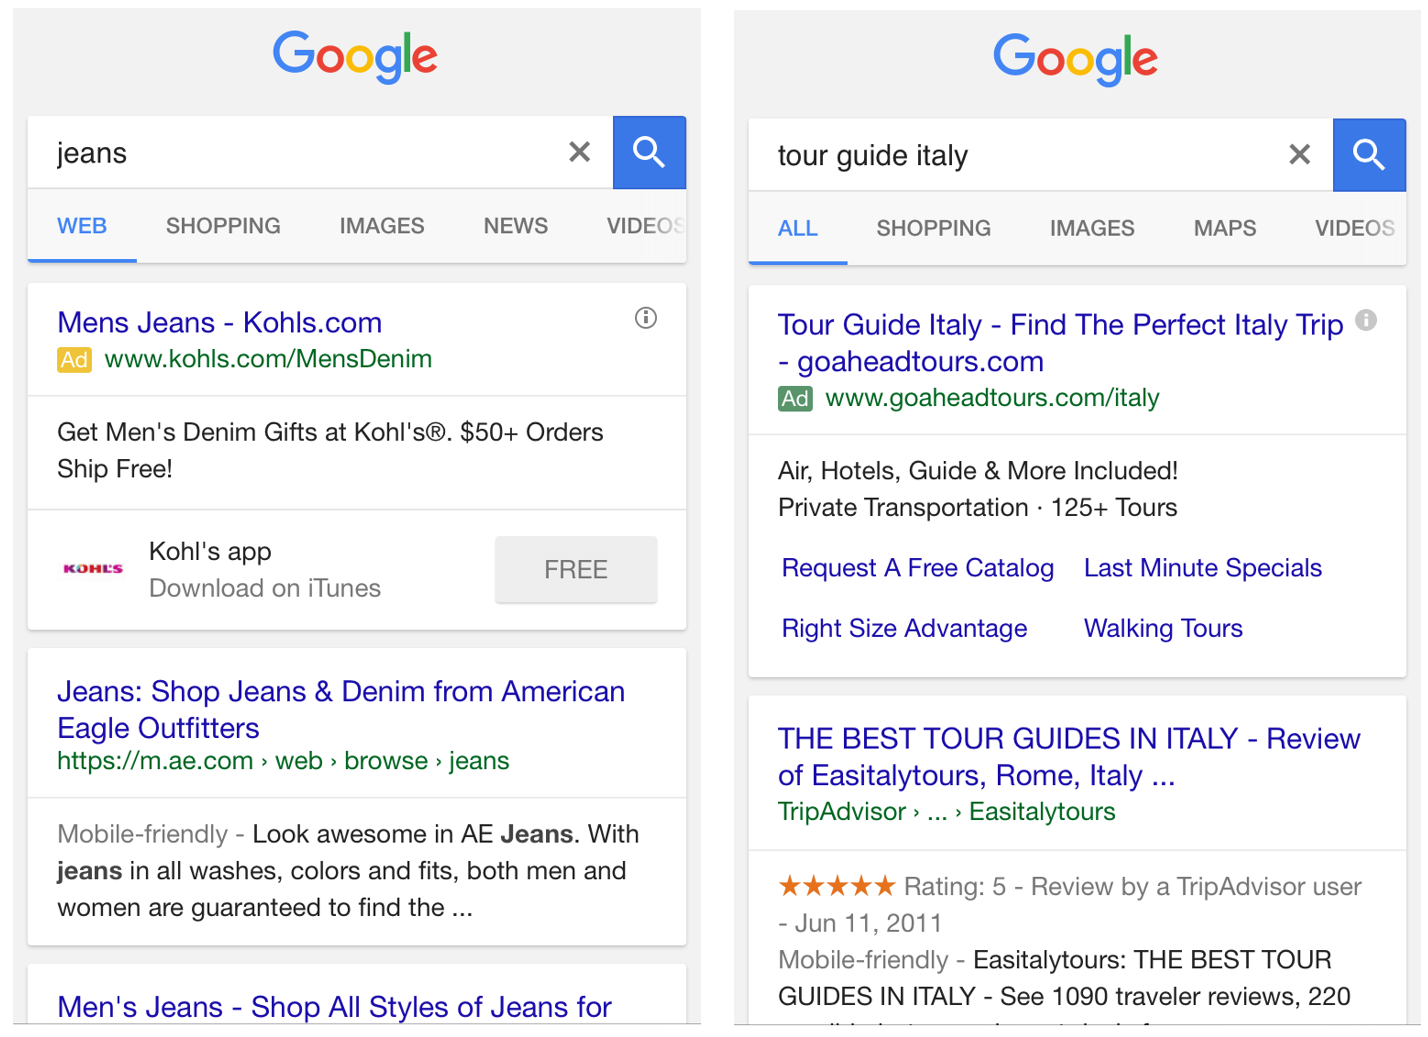 google-ads-green-yellow-sourcedfrom-marketingland.com